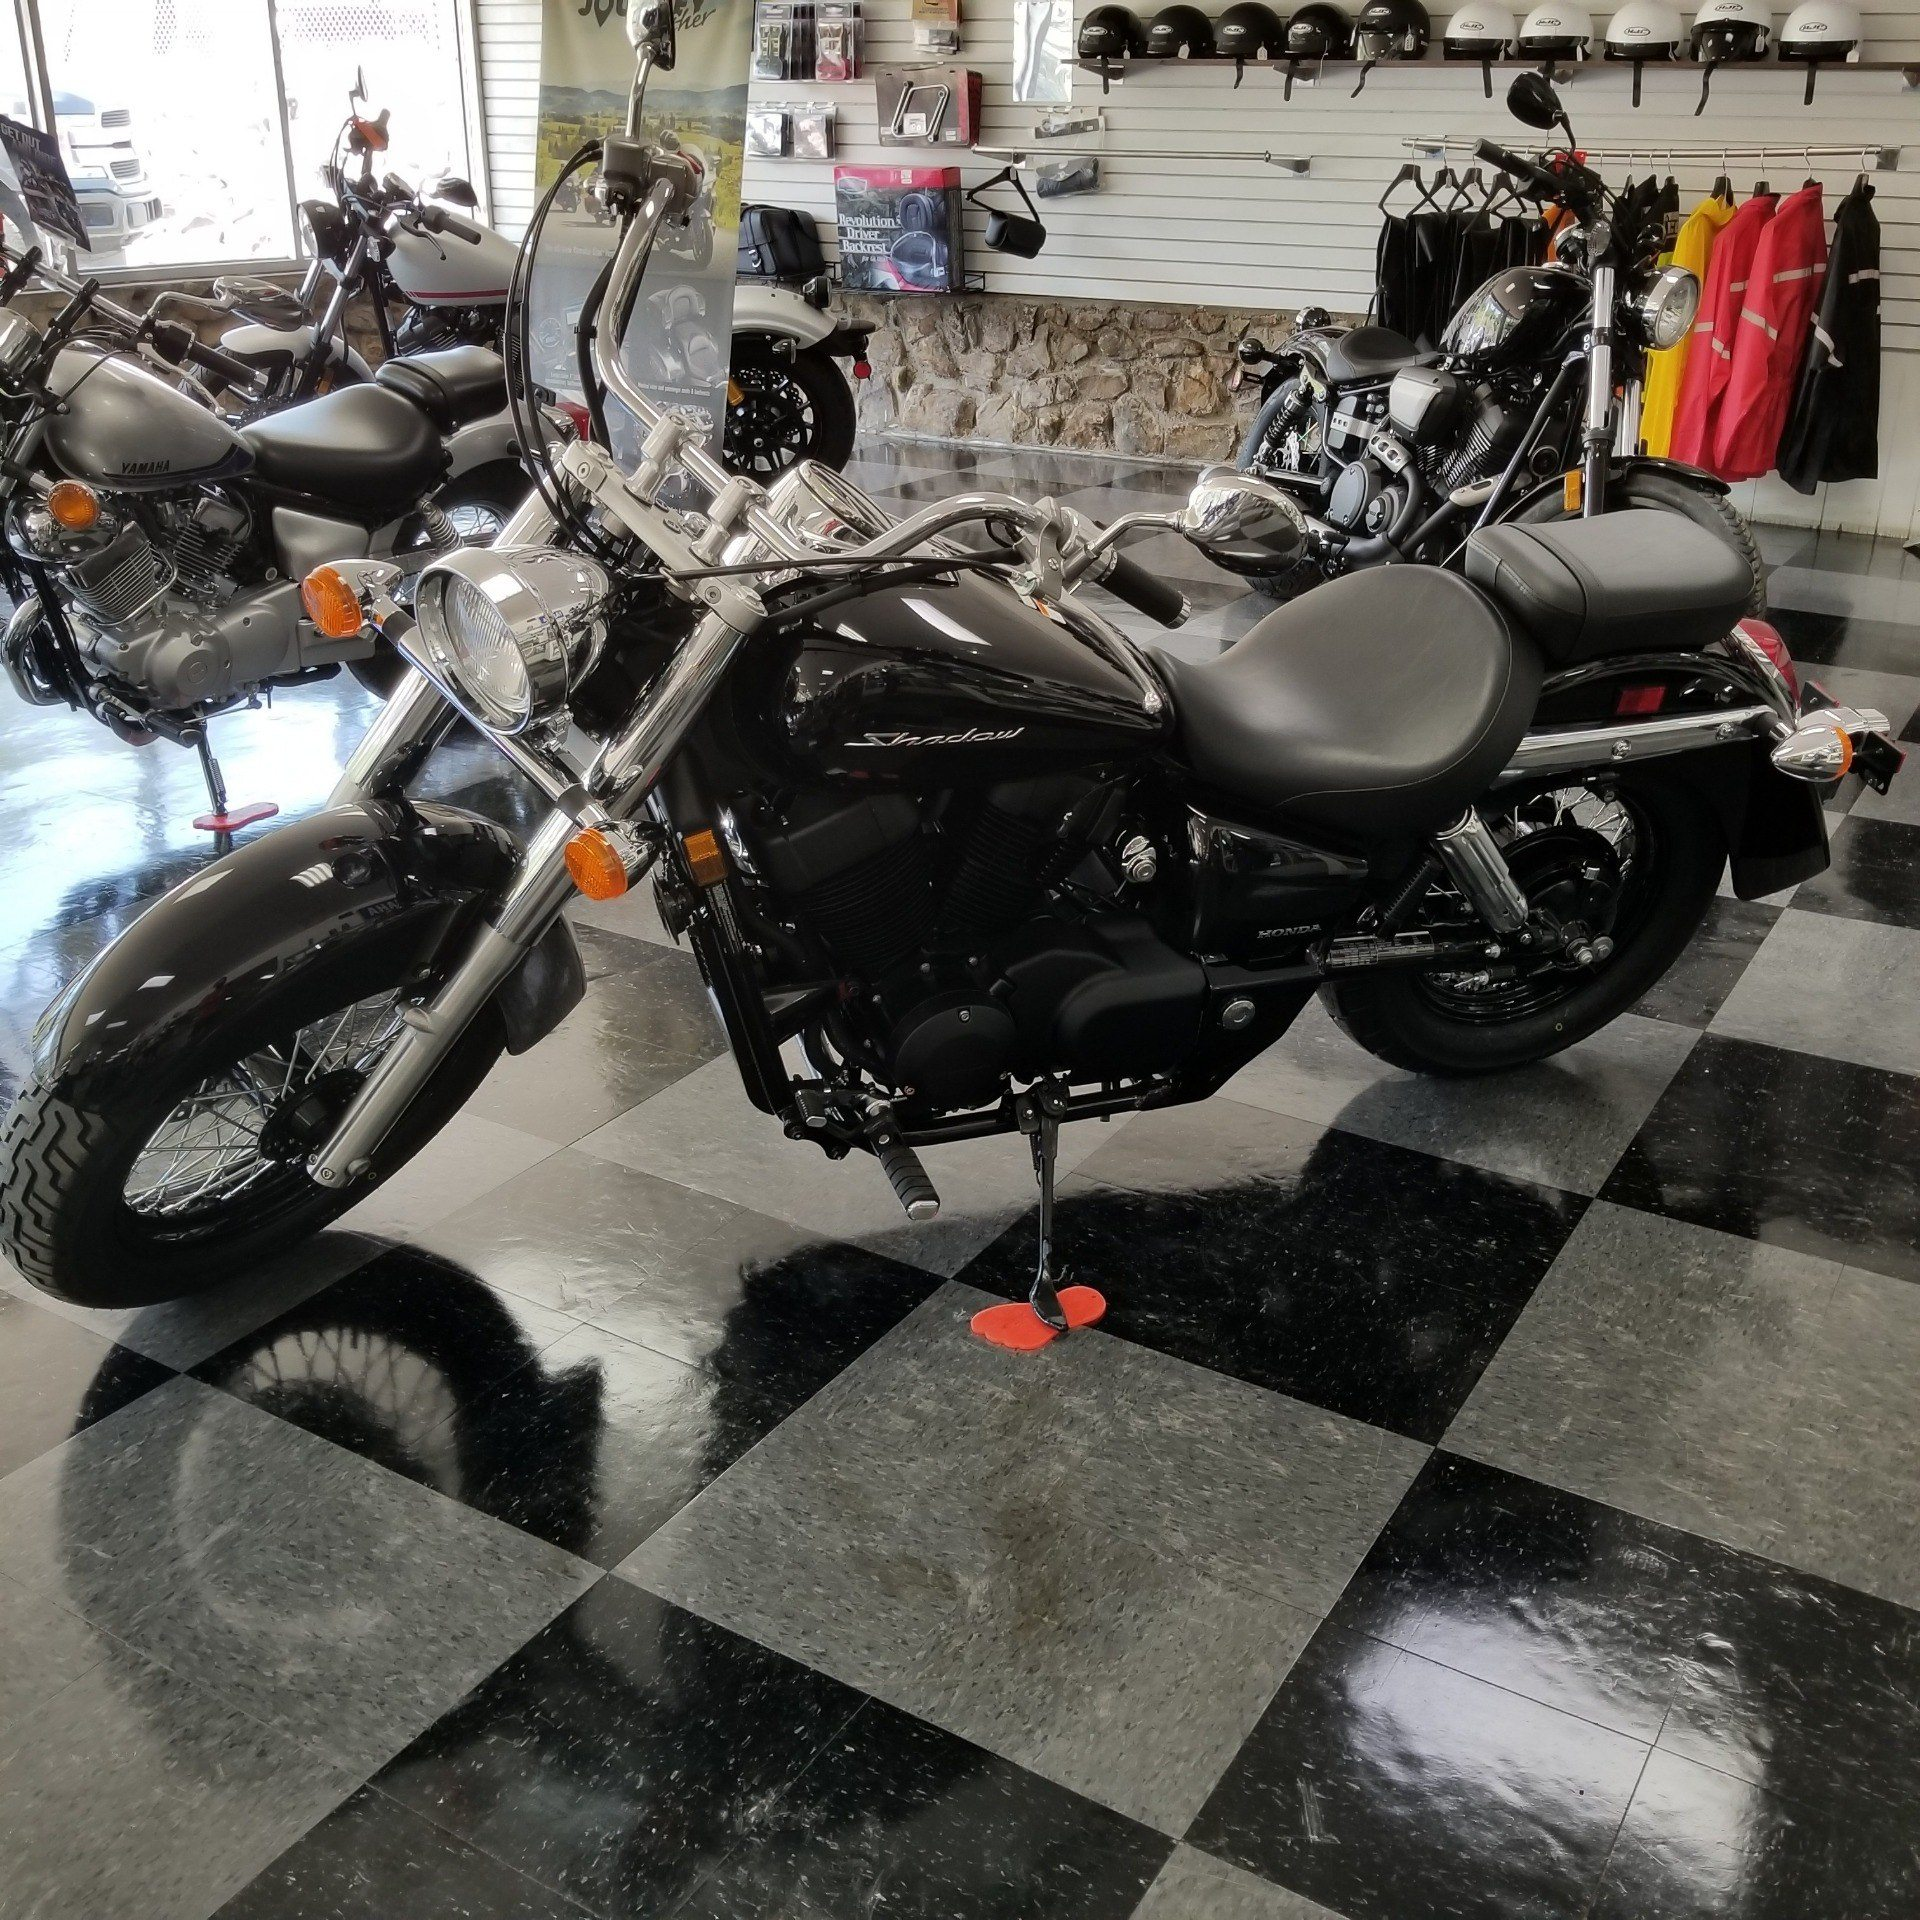 2020 Honda Shadow Aero 750 in North Little Rock, Arkansas - Photo 1